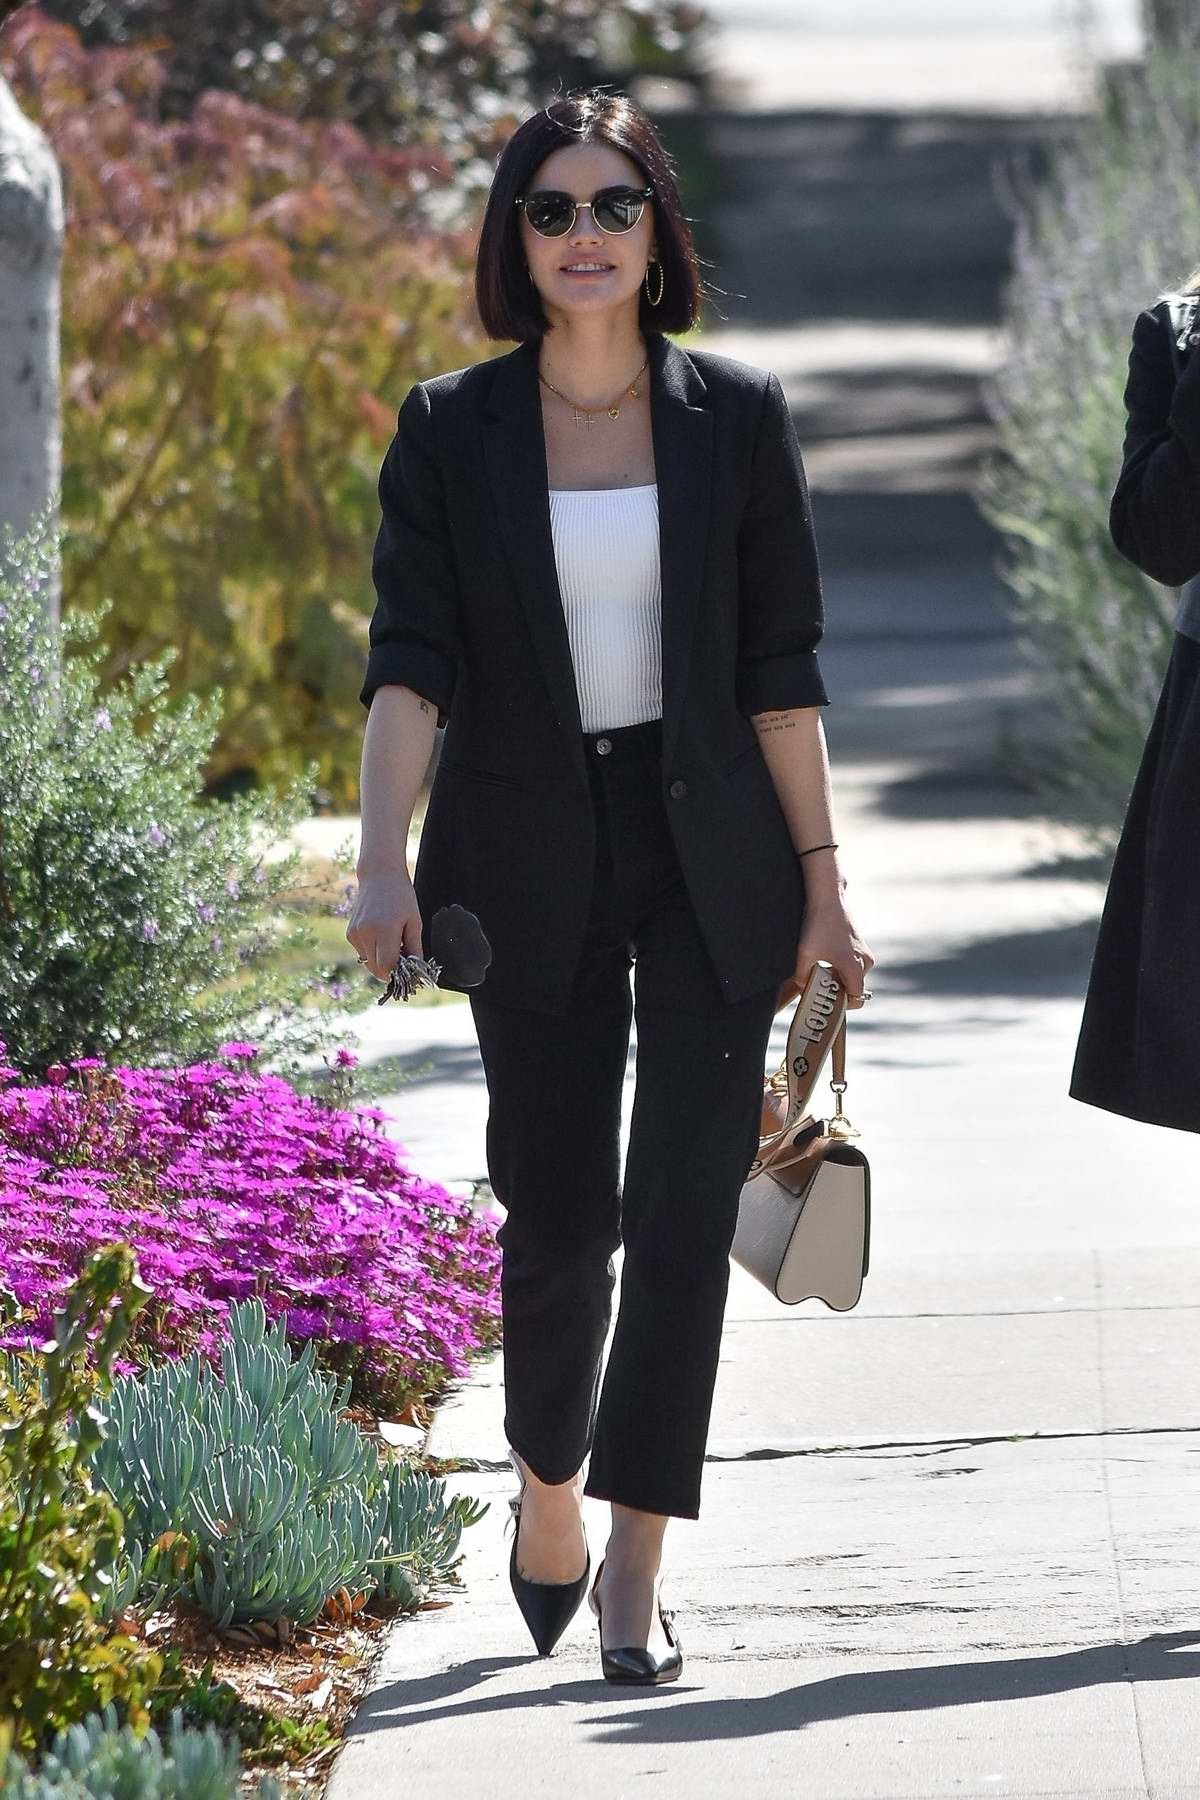 Lucy Hale is all smiles while out for lunch with a friend at Aroma cafe in Studio City, California